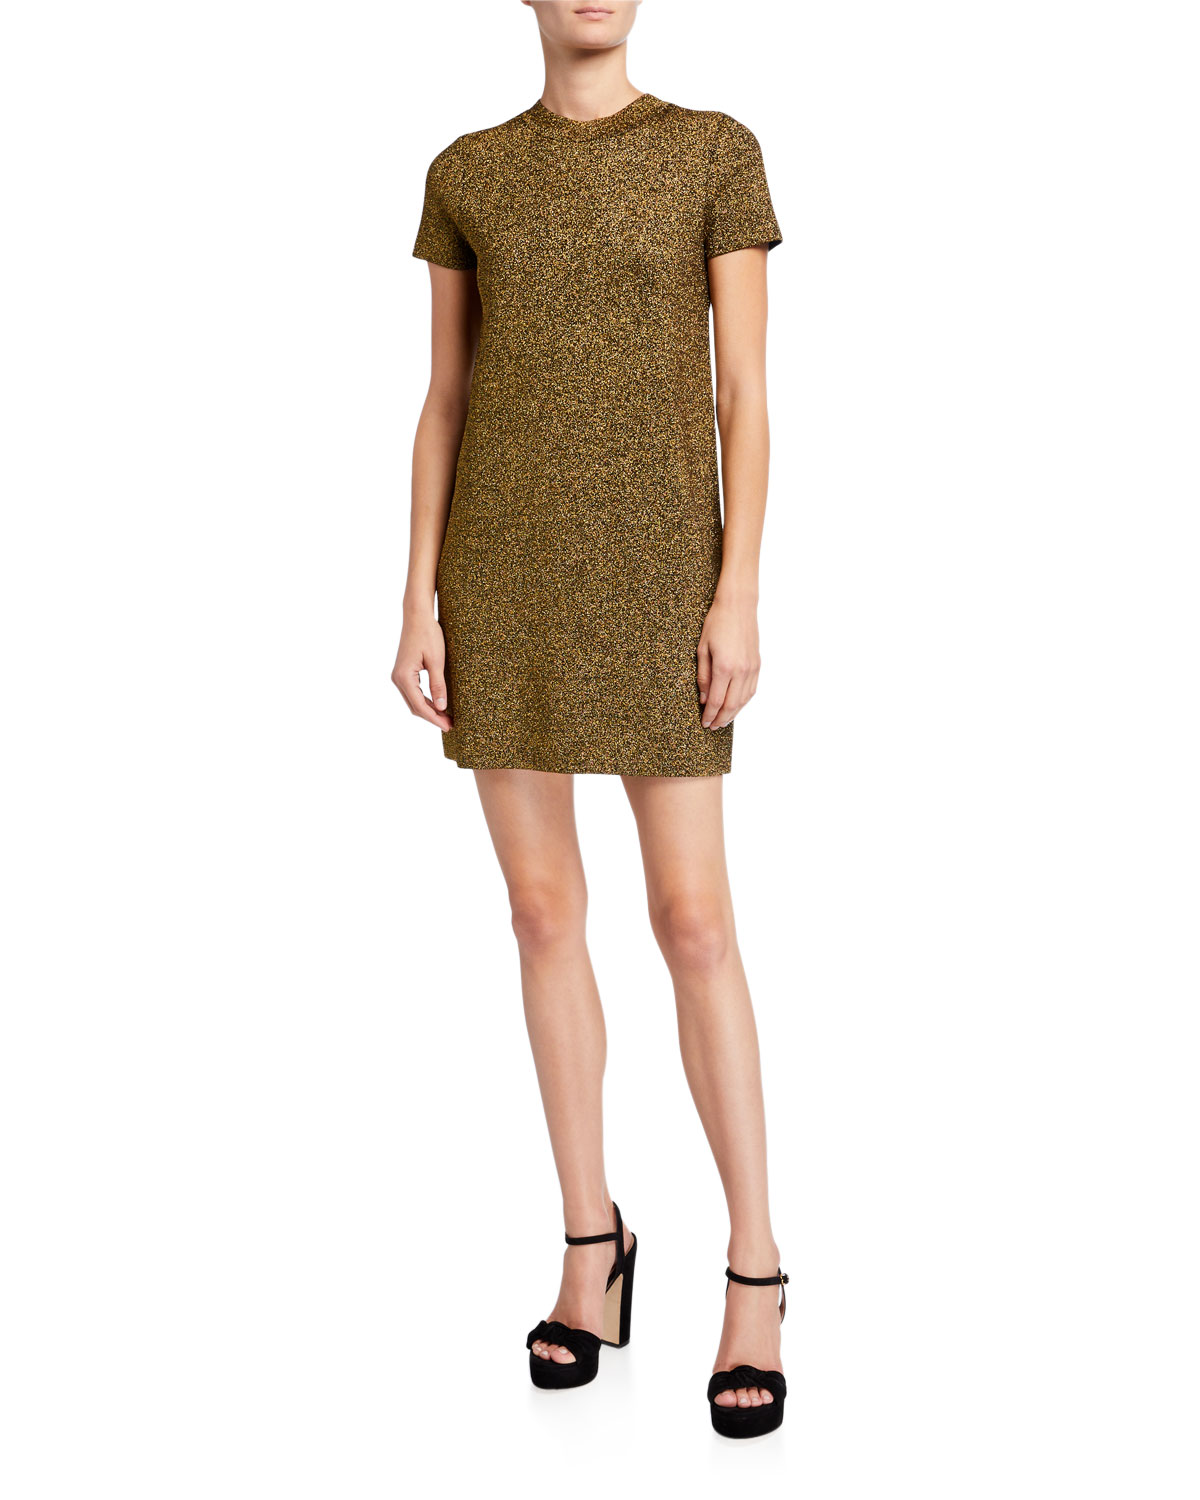 Milly Metallic Mod Dress In Gold